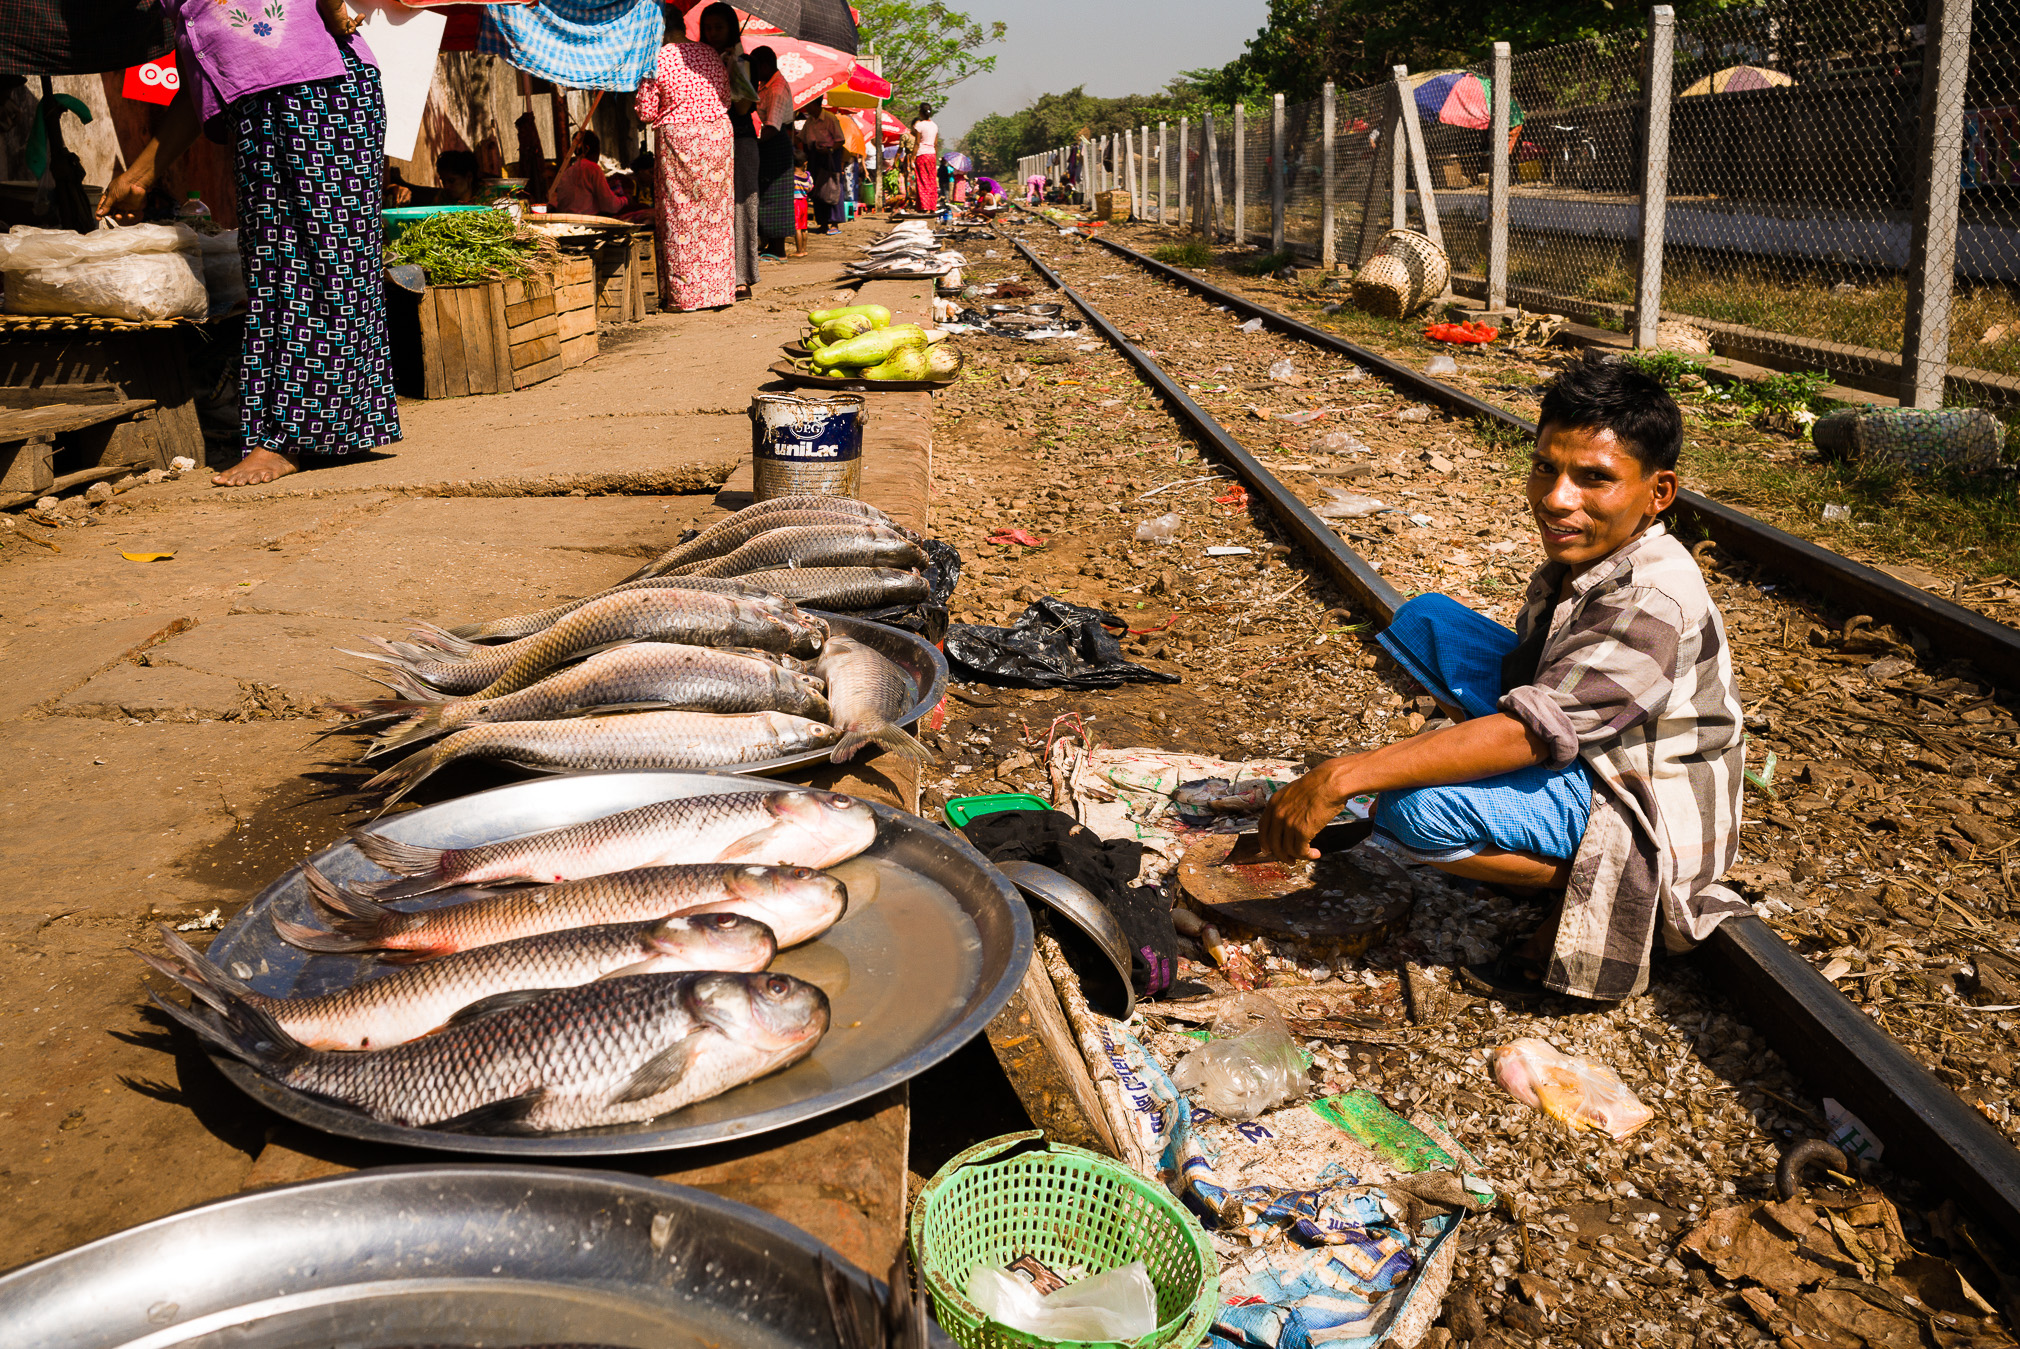 Selling fish beside the railway line